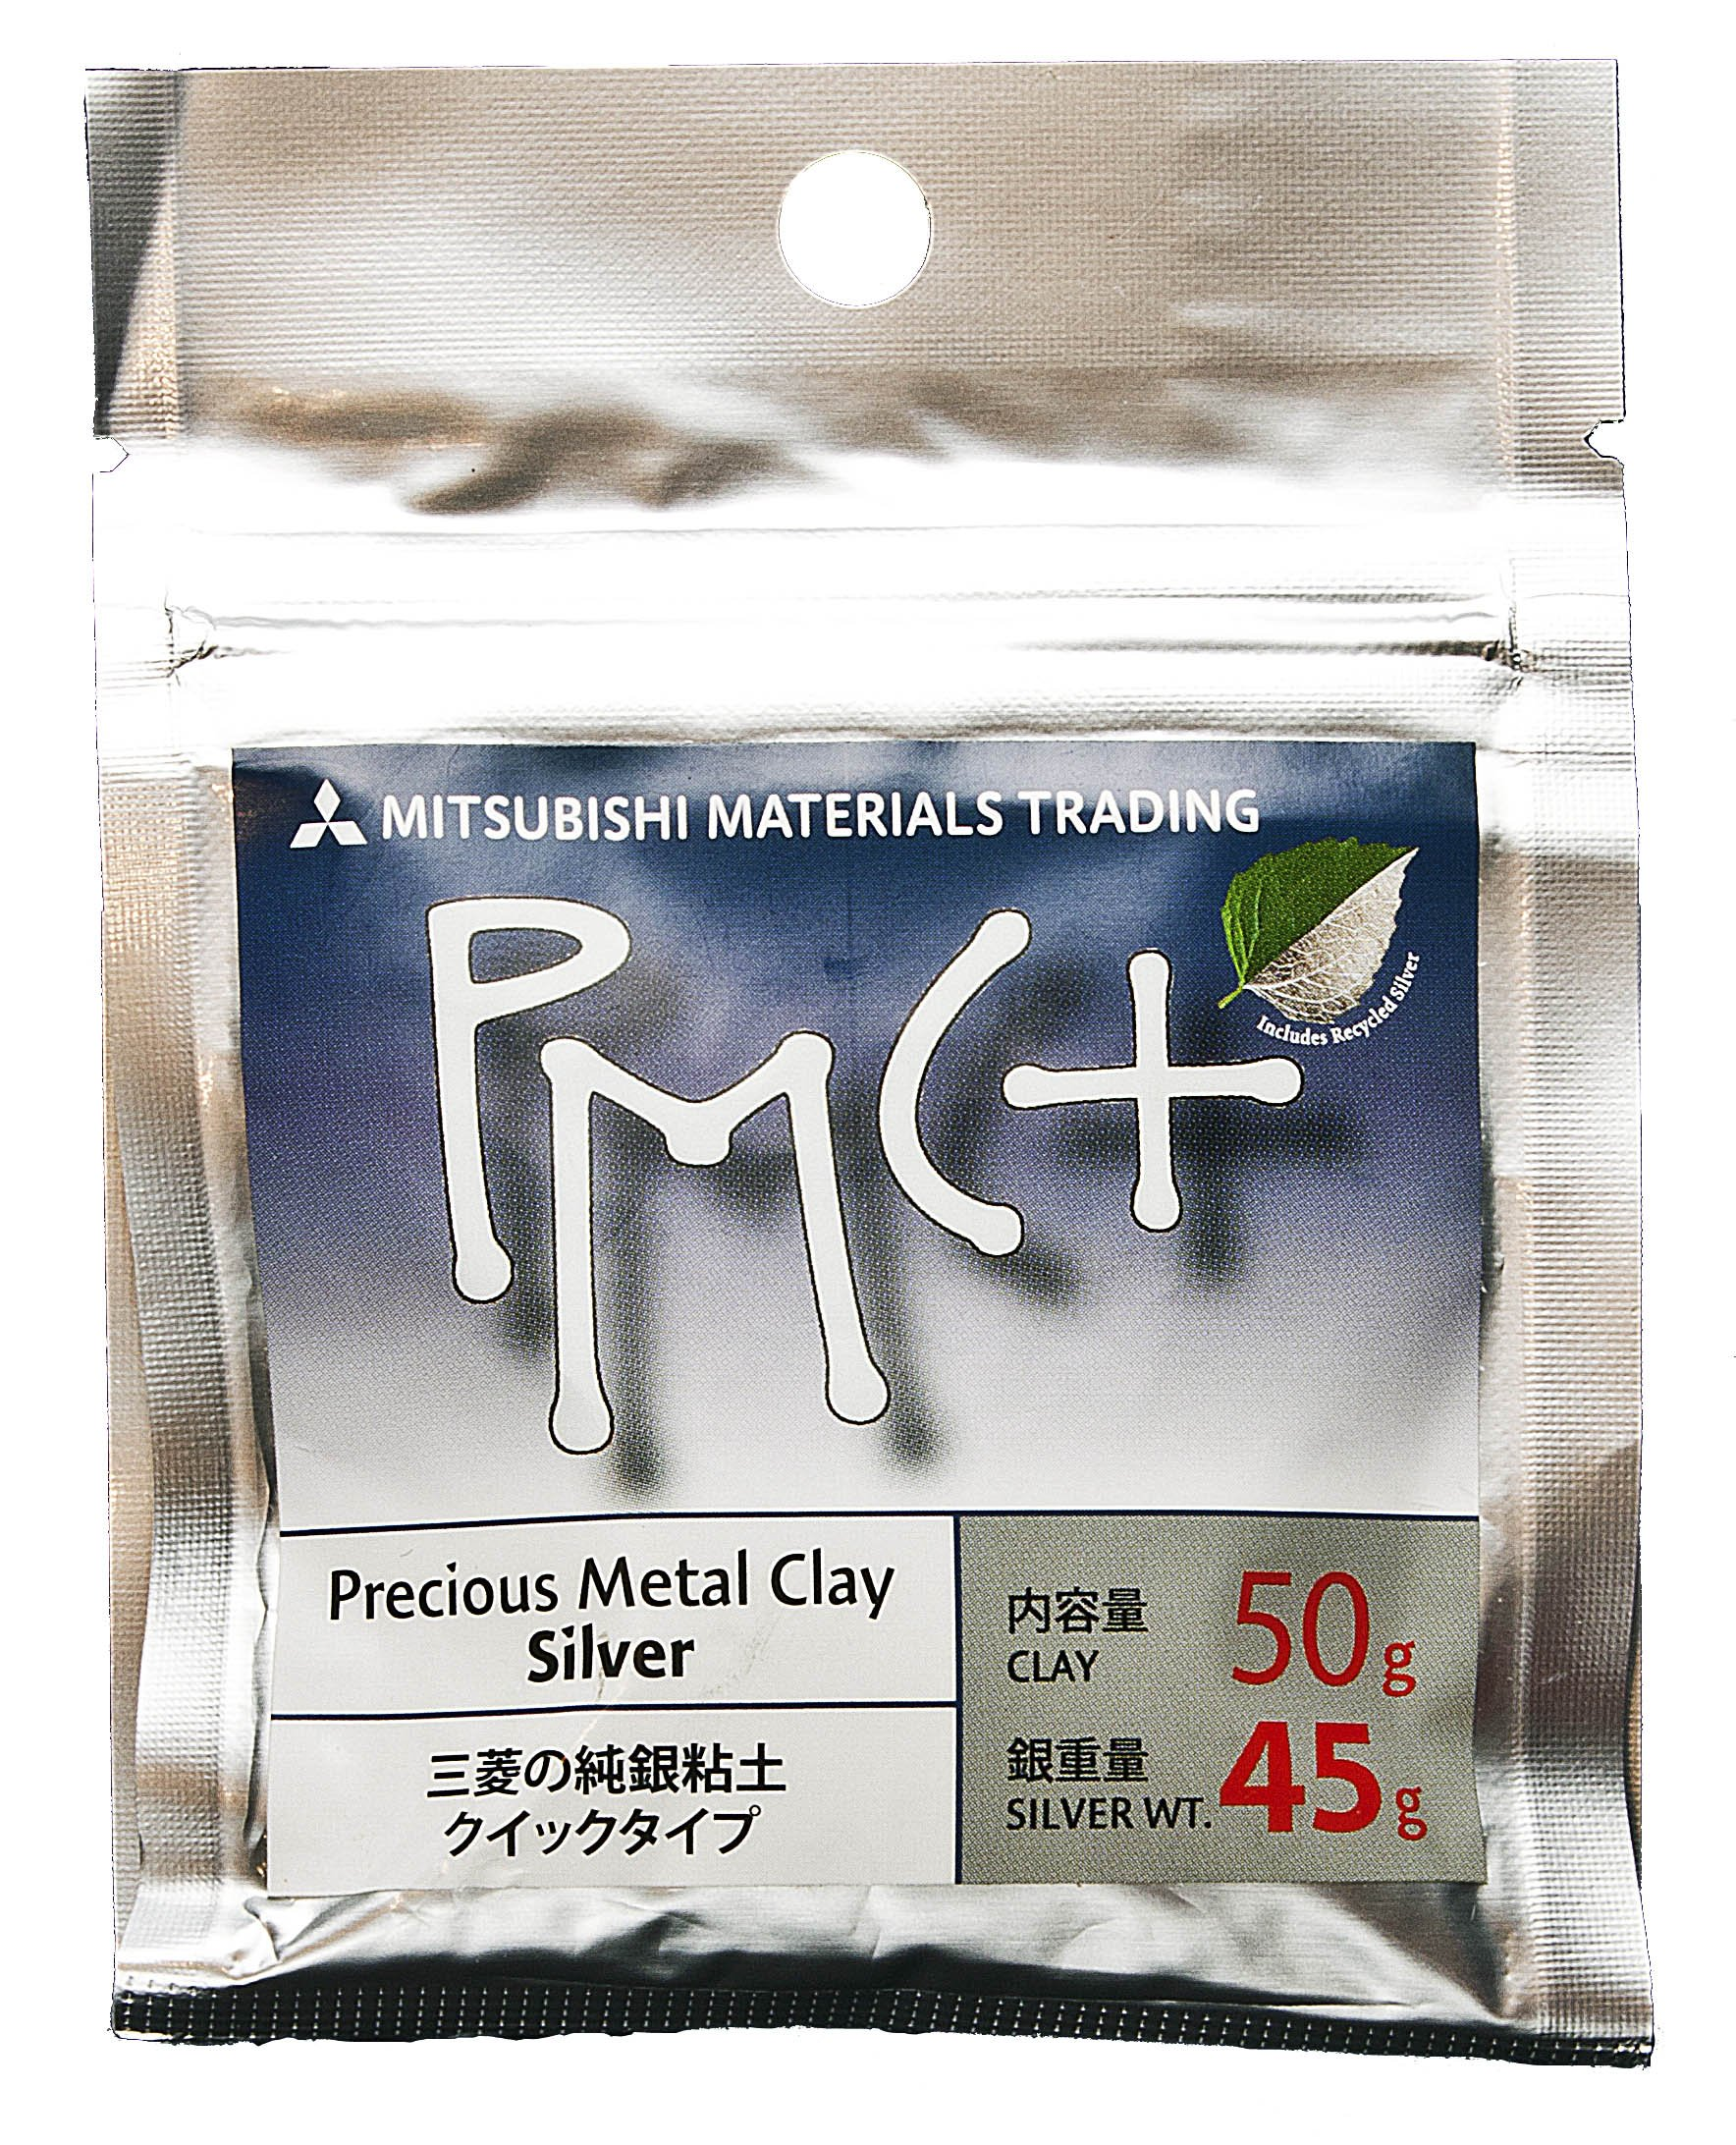 Pmc+ Silver Metal Clay - 45 Grams by Mitsubishi Materials